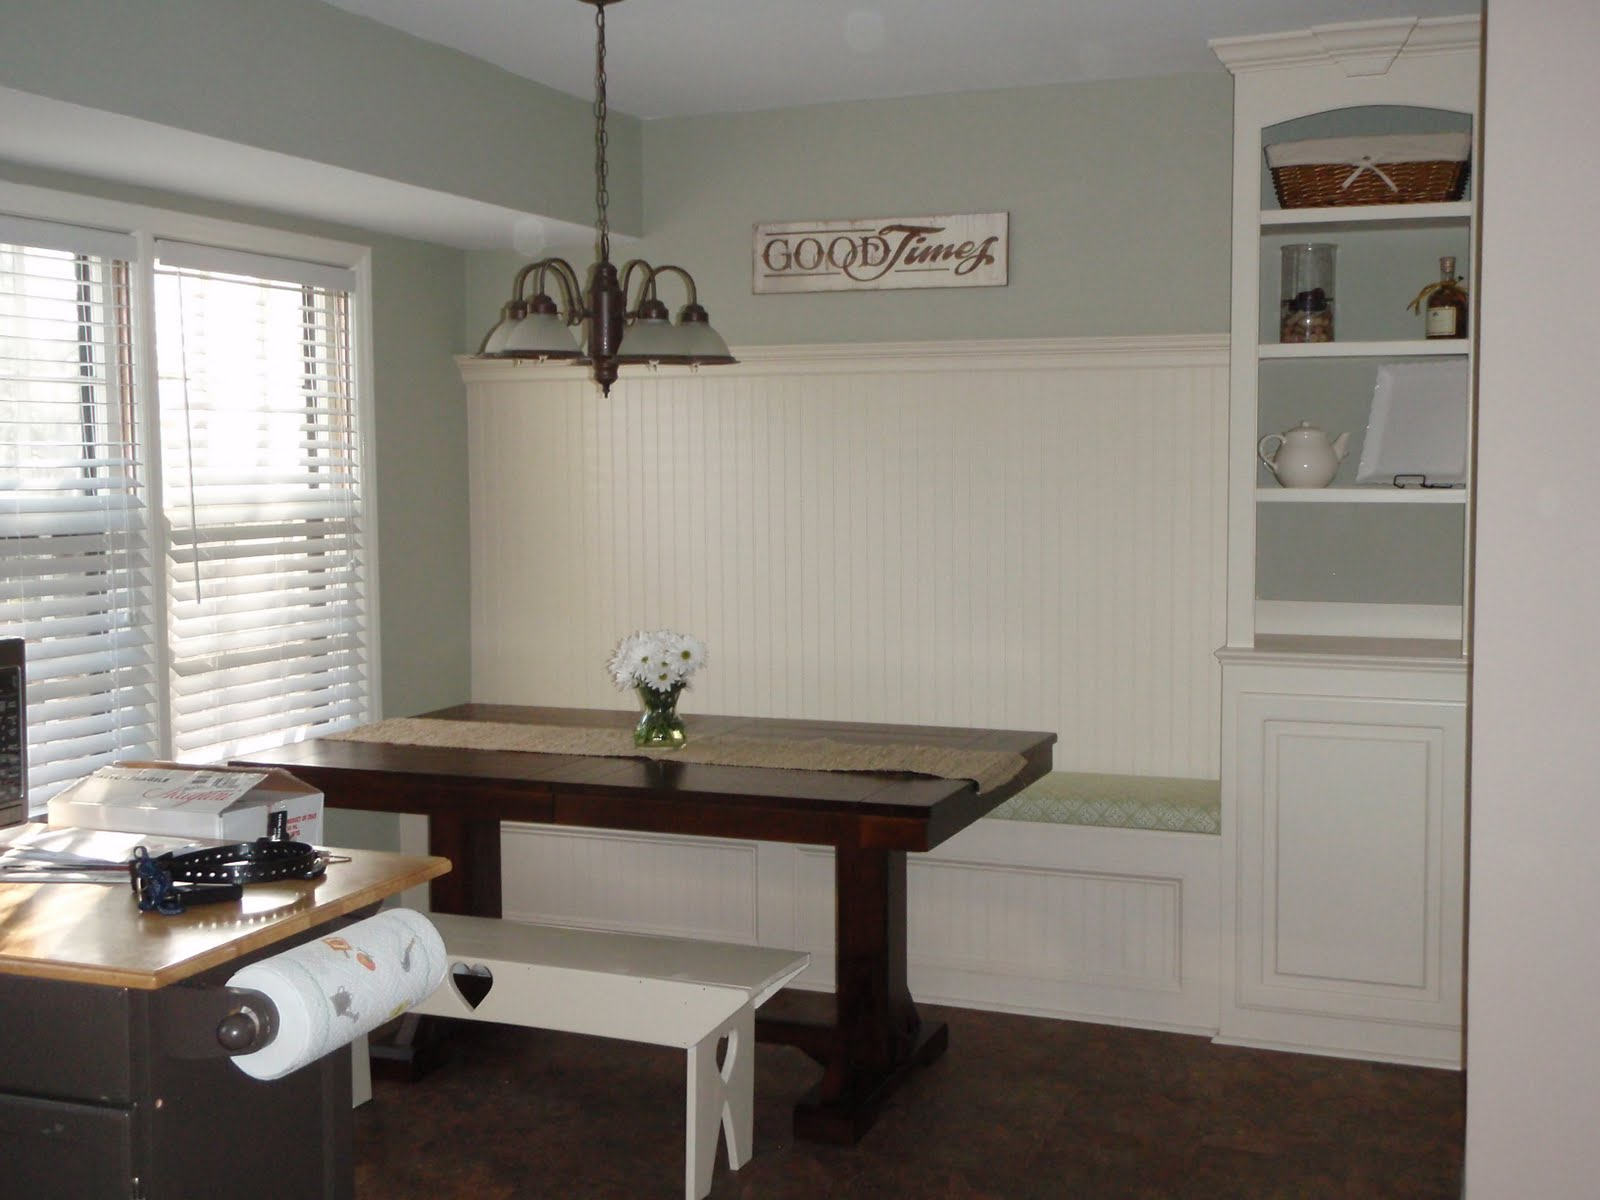 remodelaholic kitchen renovation with built in banquette